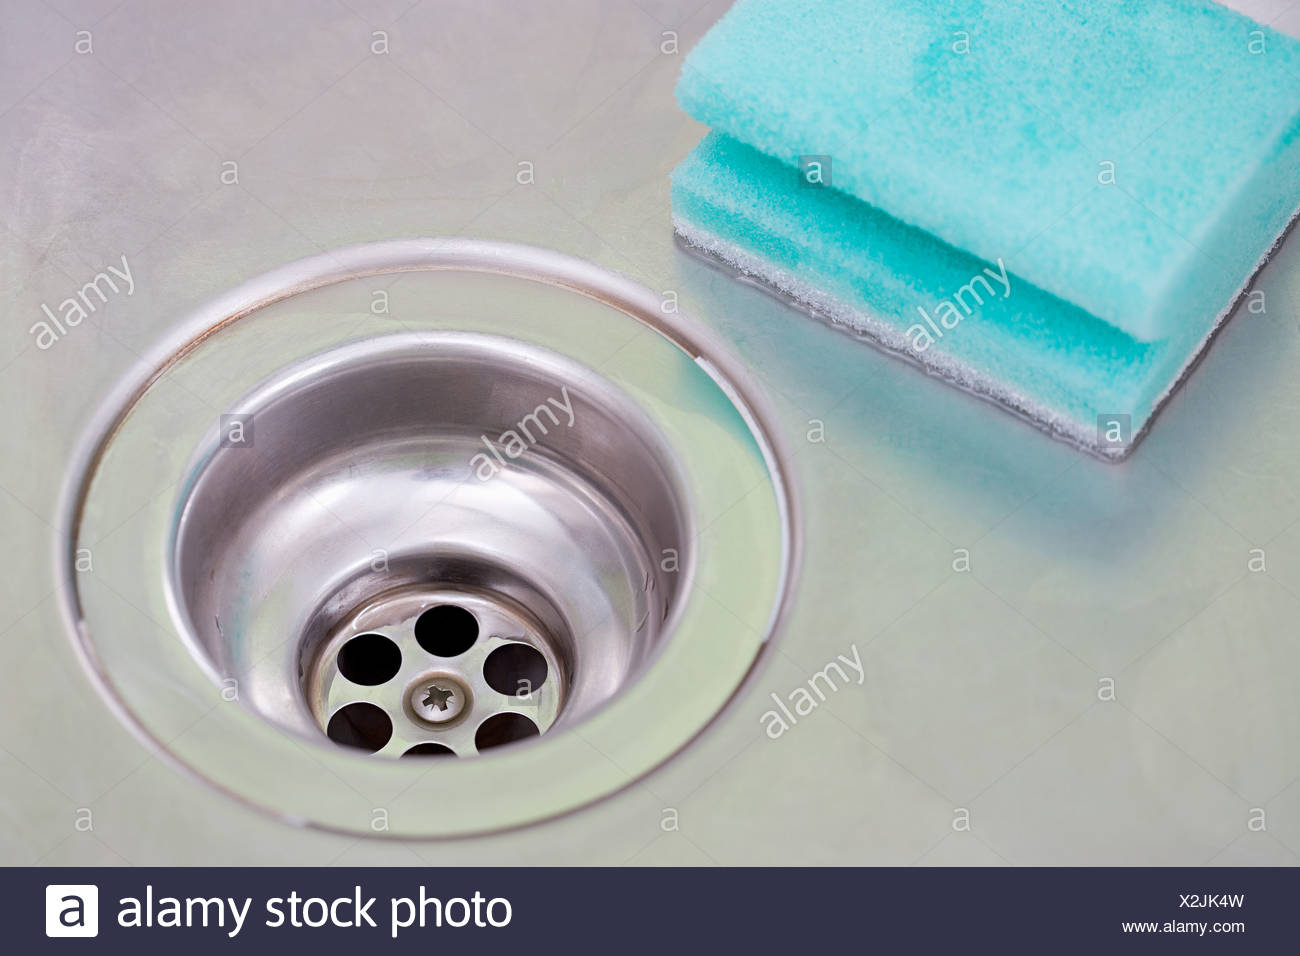 Plug hole and sponge - Stock Image